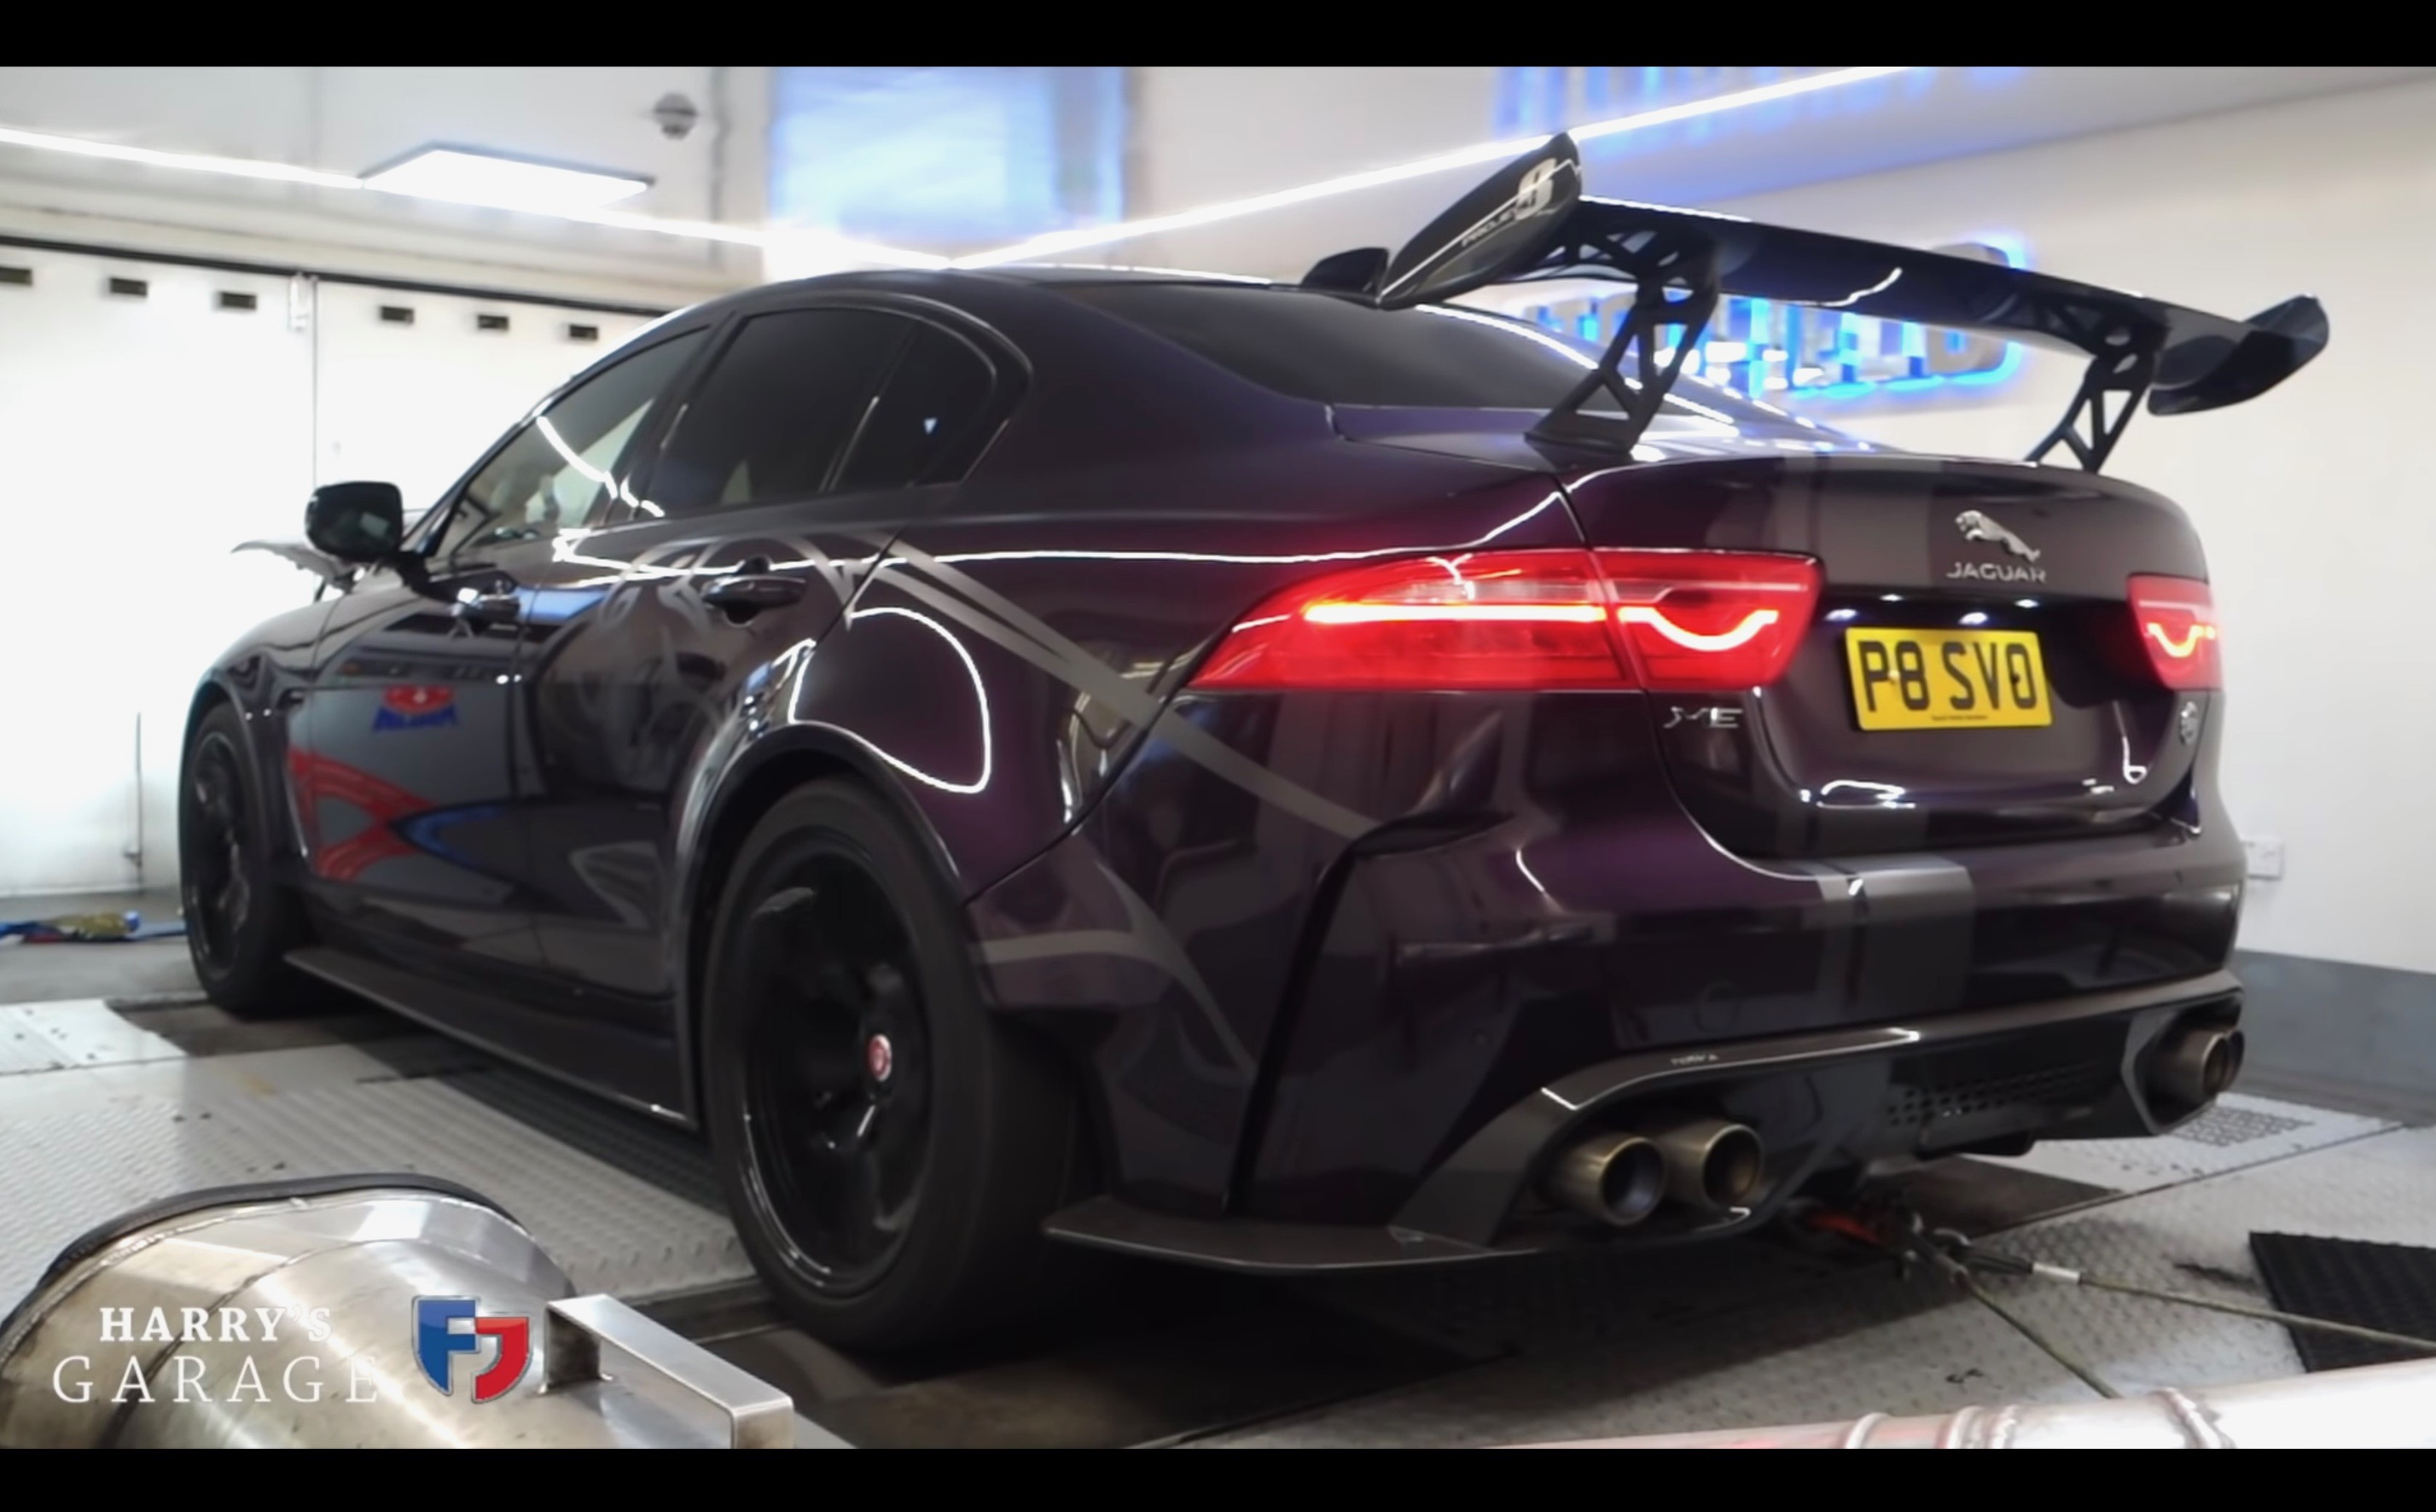 Jaguar Xe Sv Project 8 >> Jaguar Xe Sv Project 8 Produces 362kw At The Wheels Video